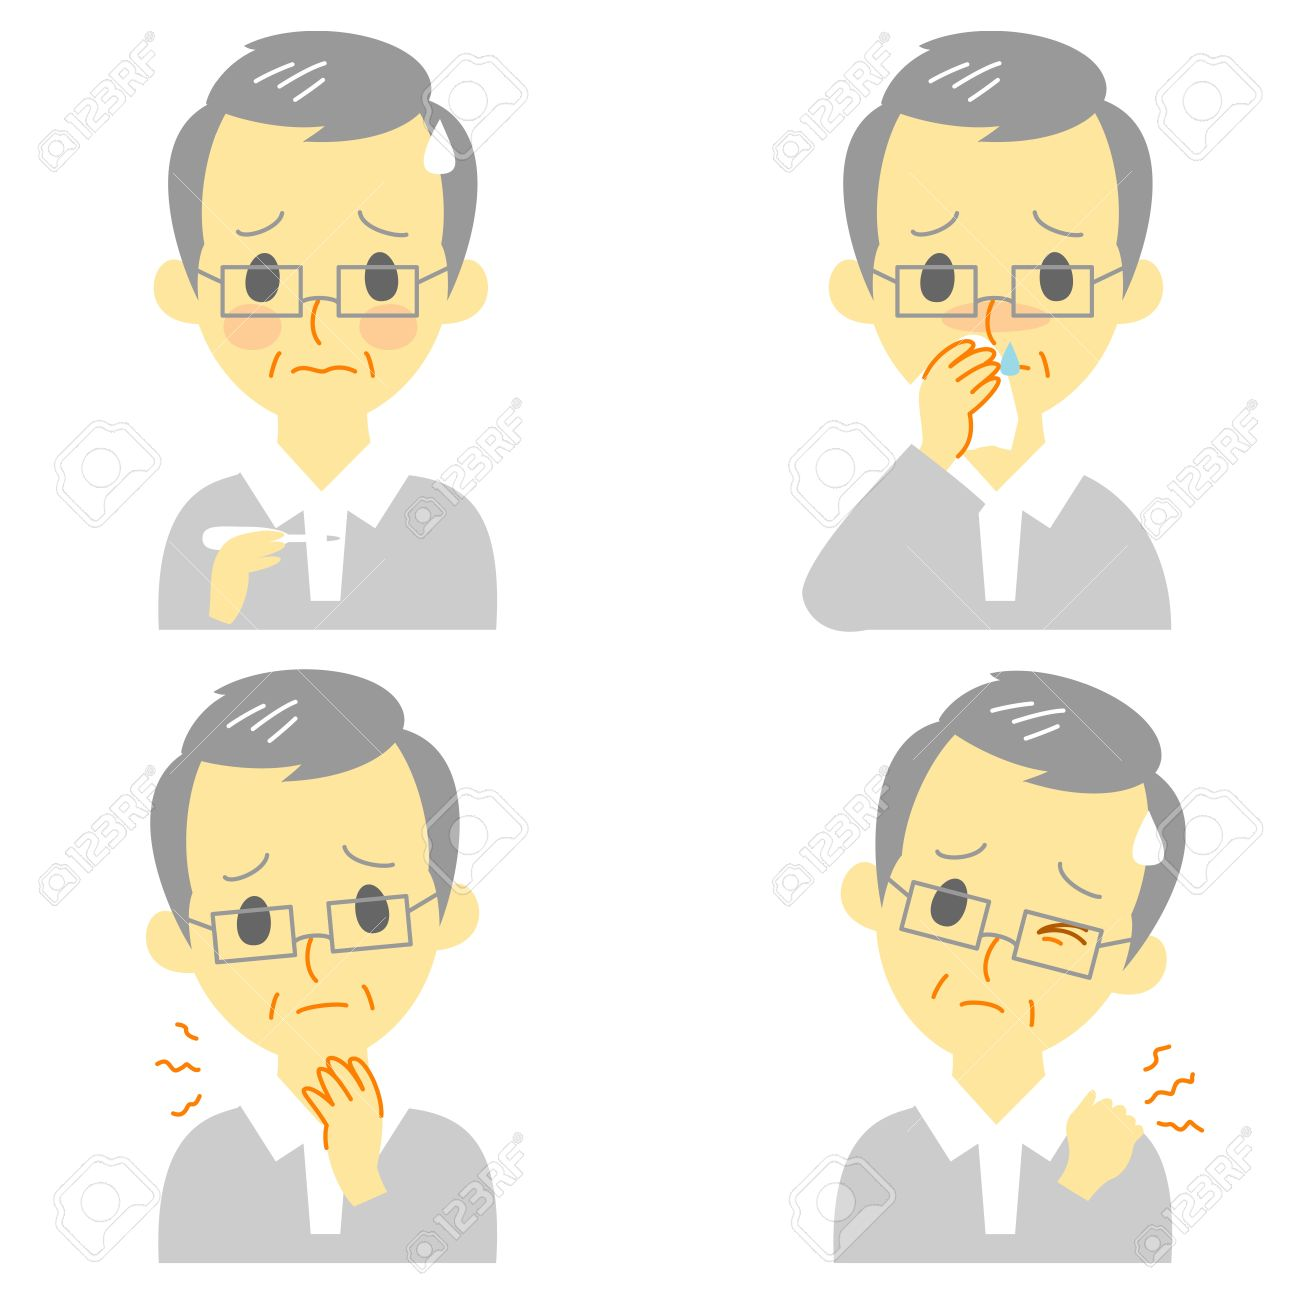 Disease Symptoms 02, fever, sore throat,dripping nose,stiff neck, expressions, old man Stock Vector - 20288173